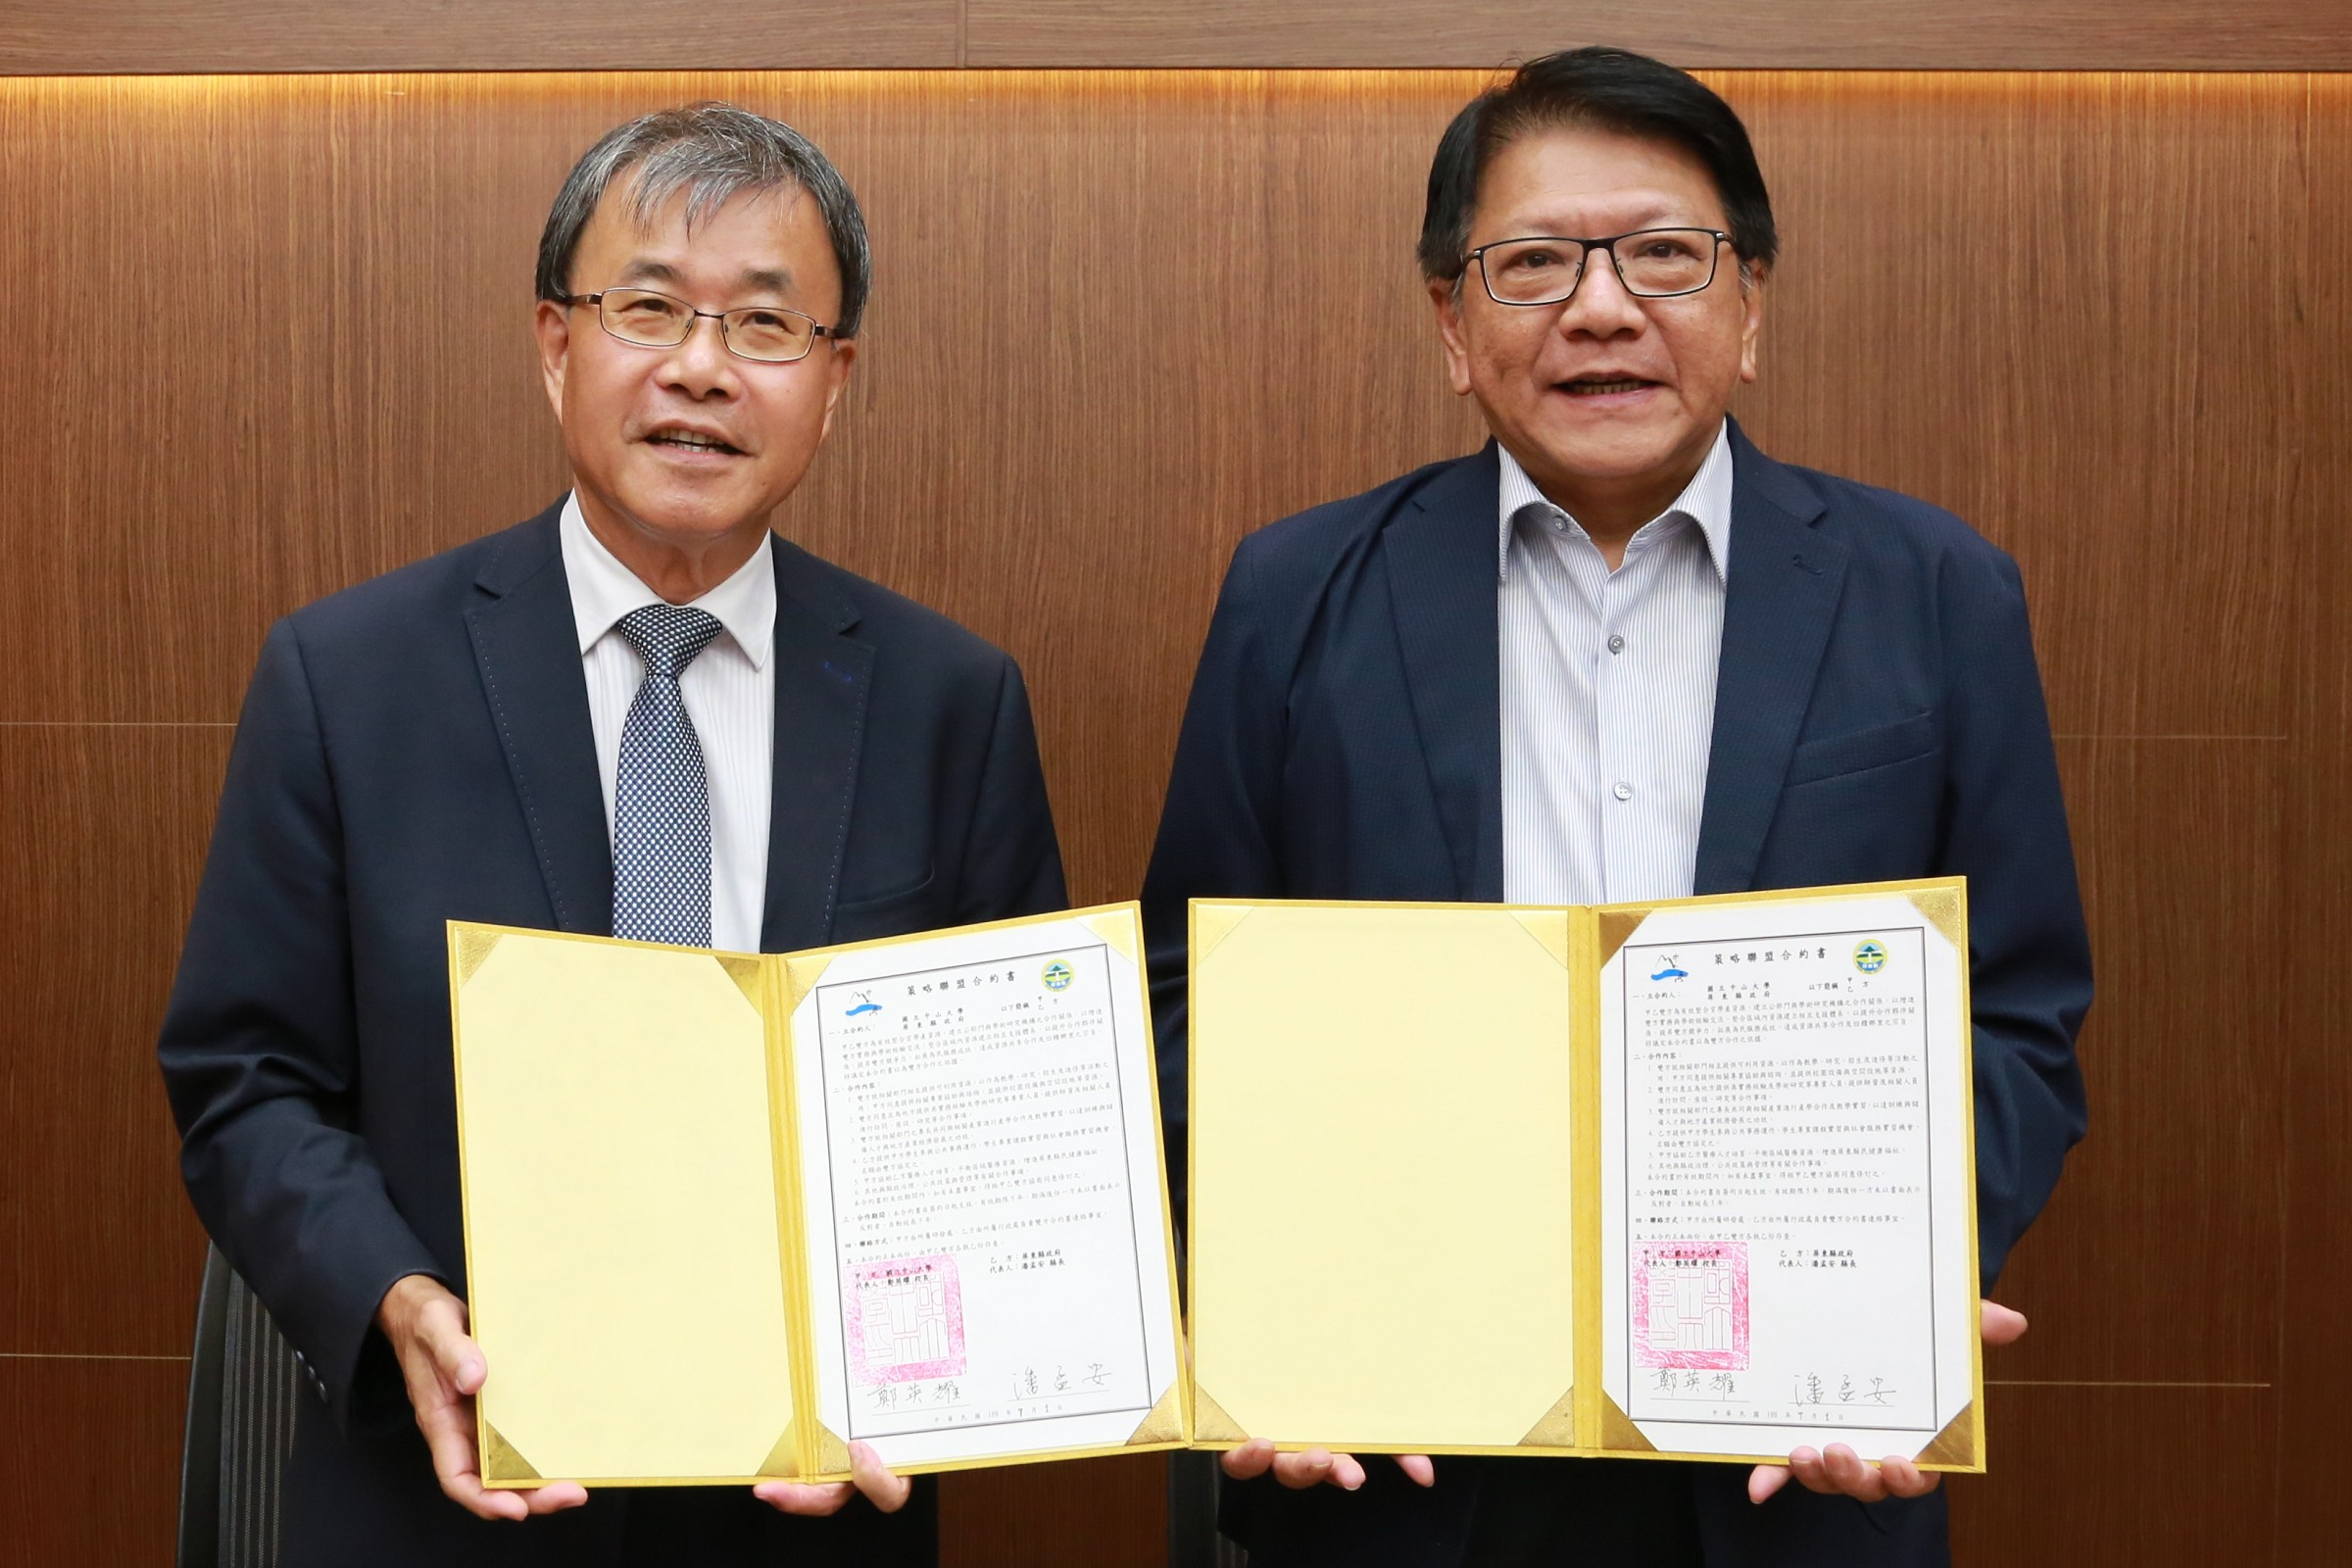 NSYSU signs MOU with Pingtung County Mayor Men-An Pan to improve the availability of medical services in rural areas